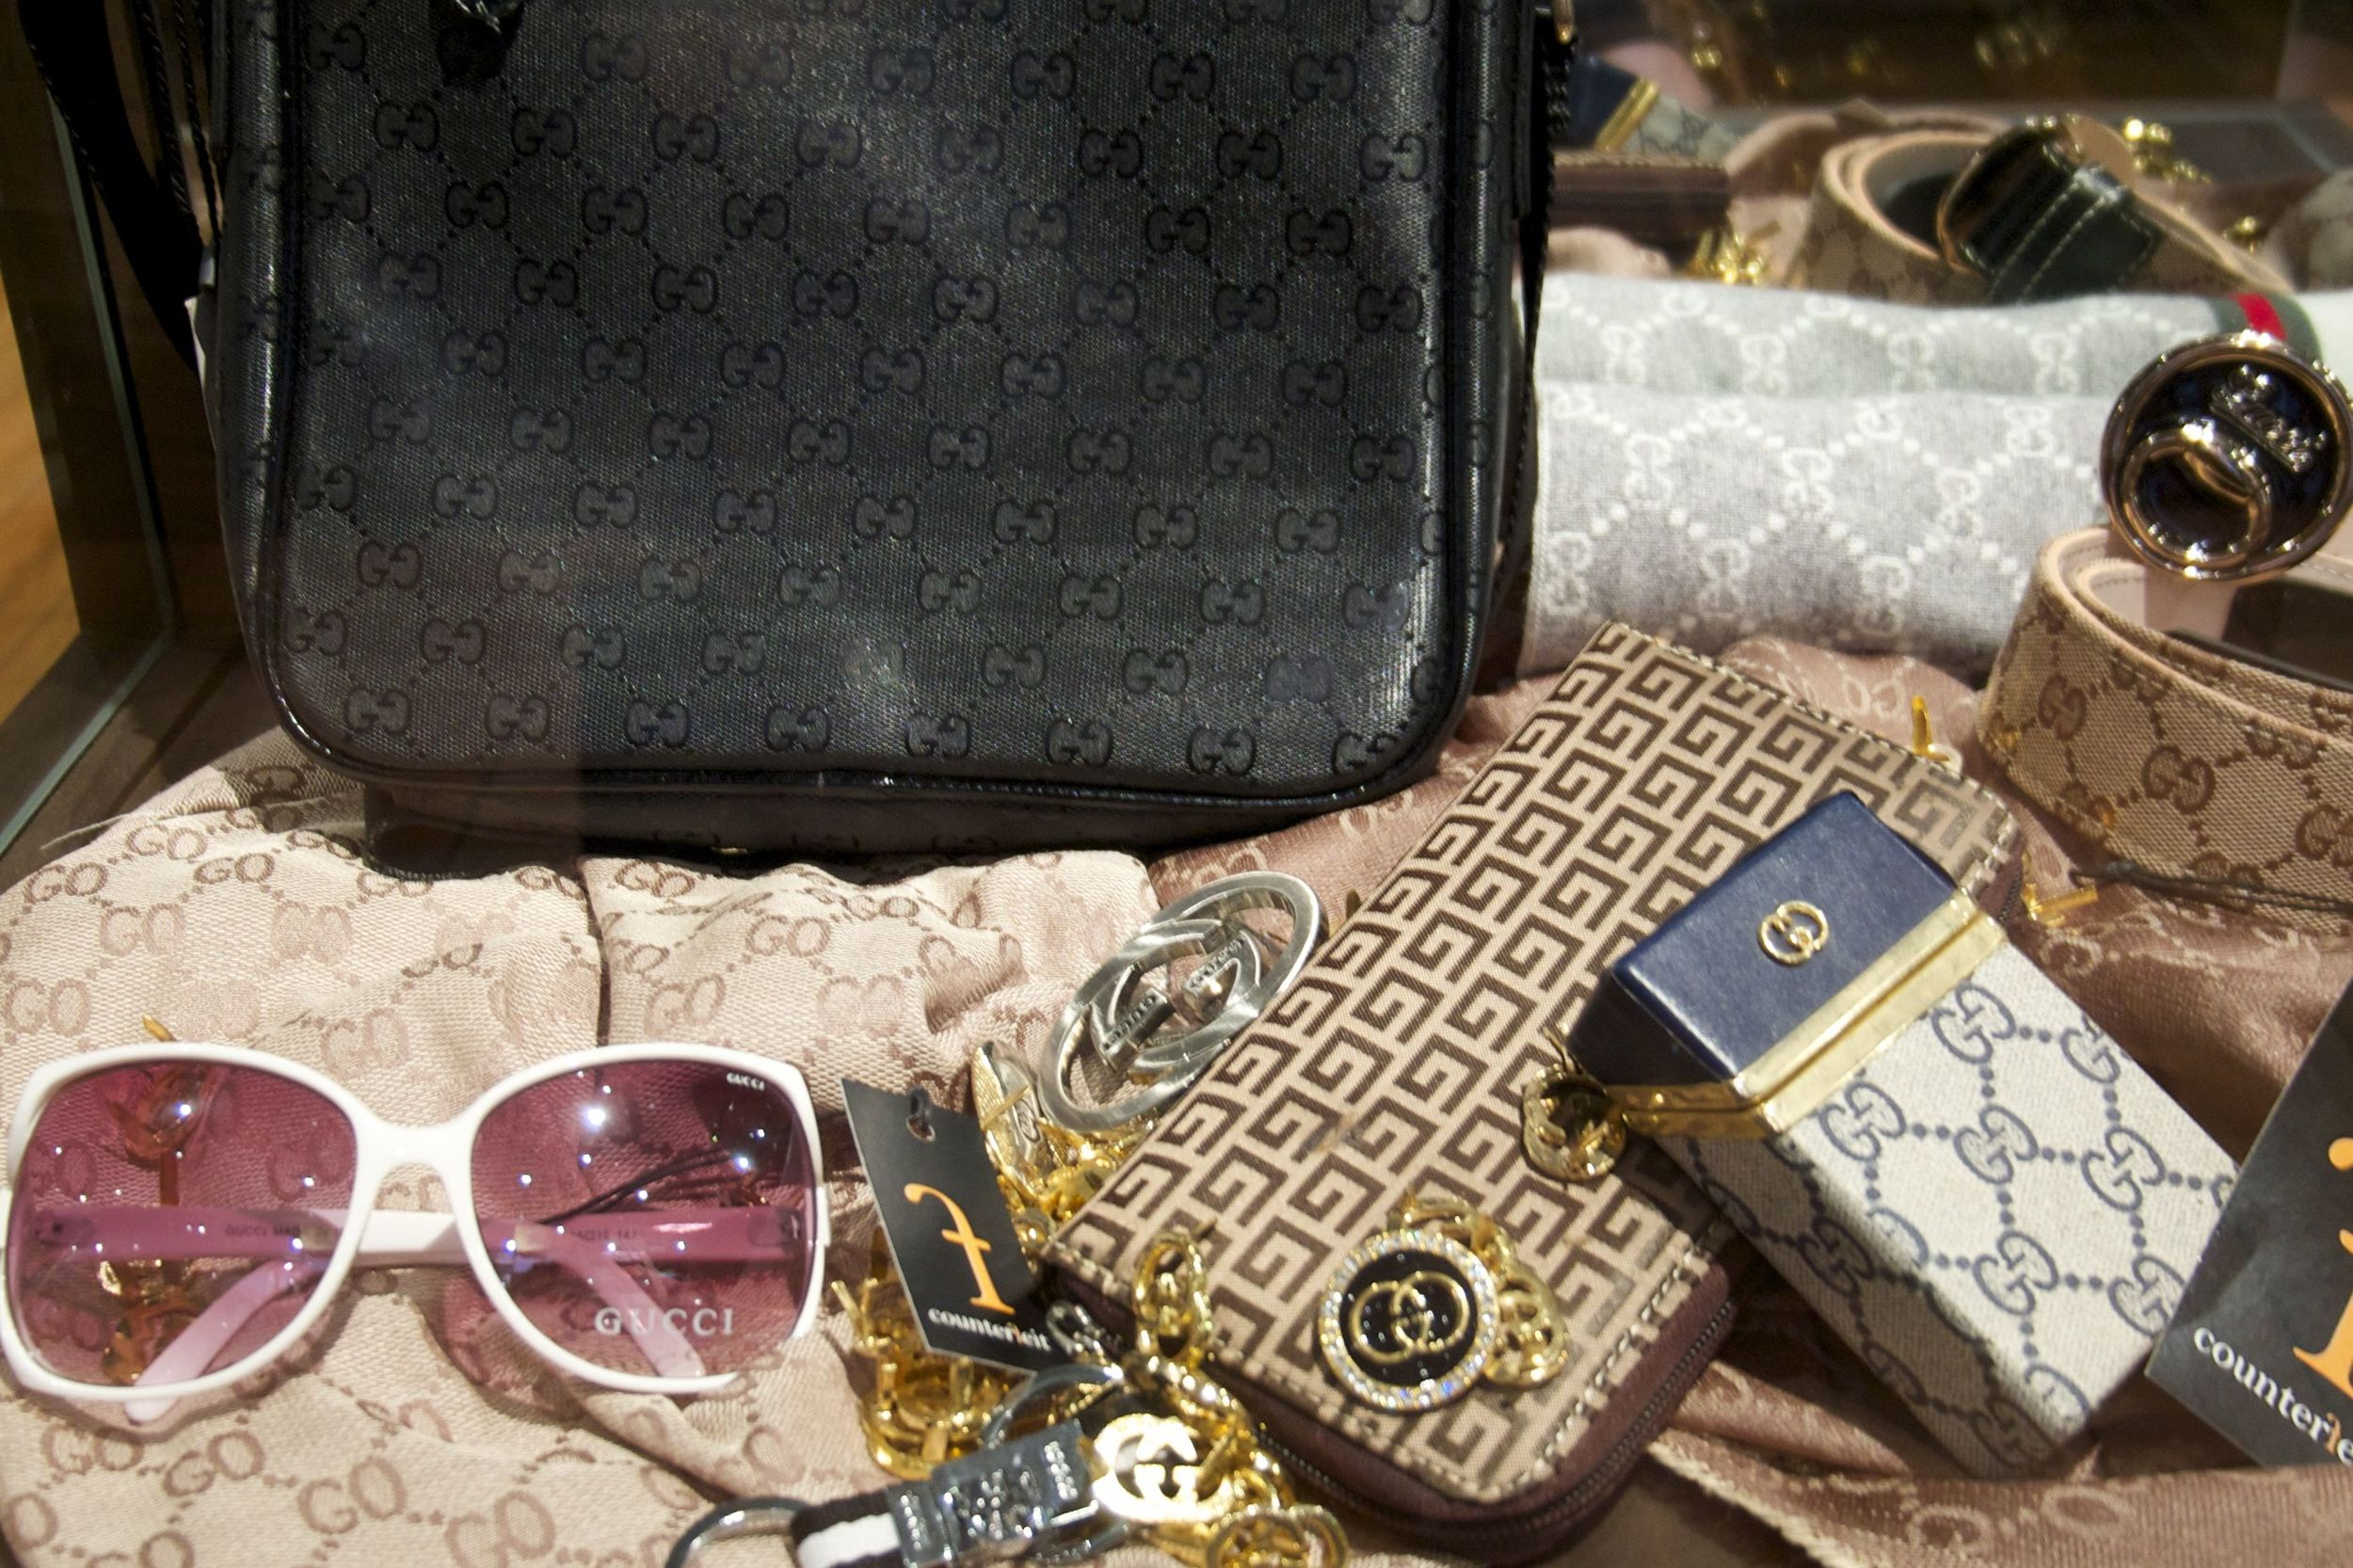 G is For Fake: Counterfeit Gucci merchandise, including sunglasses, belts, and earrings.